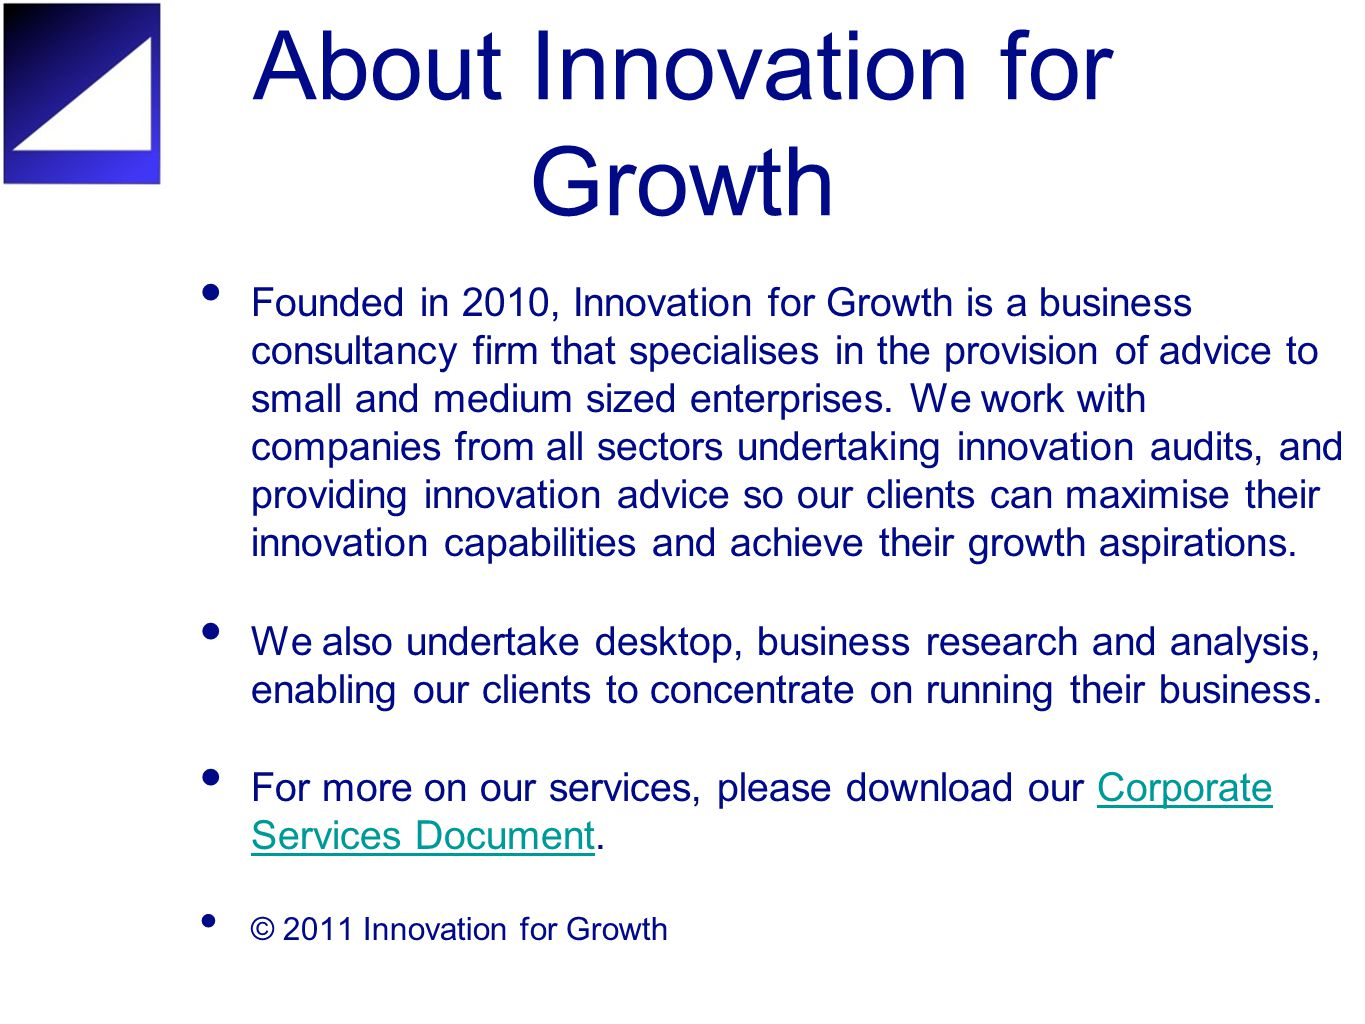 About Innovation for Growth Founded in 2010, Innovation for Growth is a business consultancy firm that specialises in the provision of advice to small and medium sized enterprises.